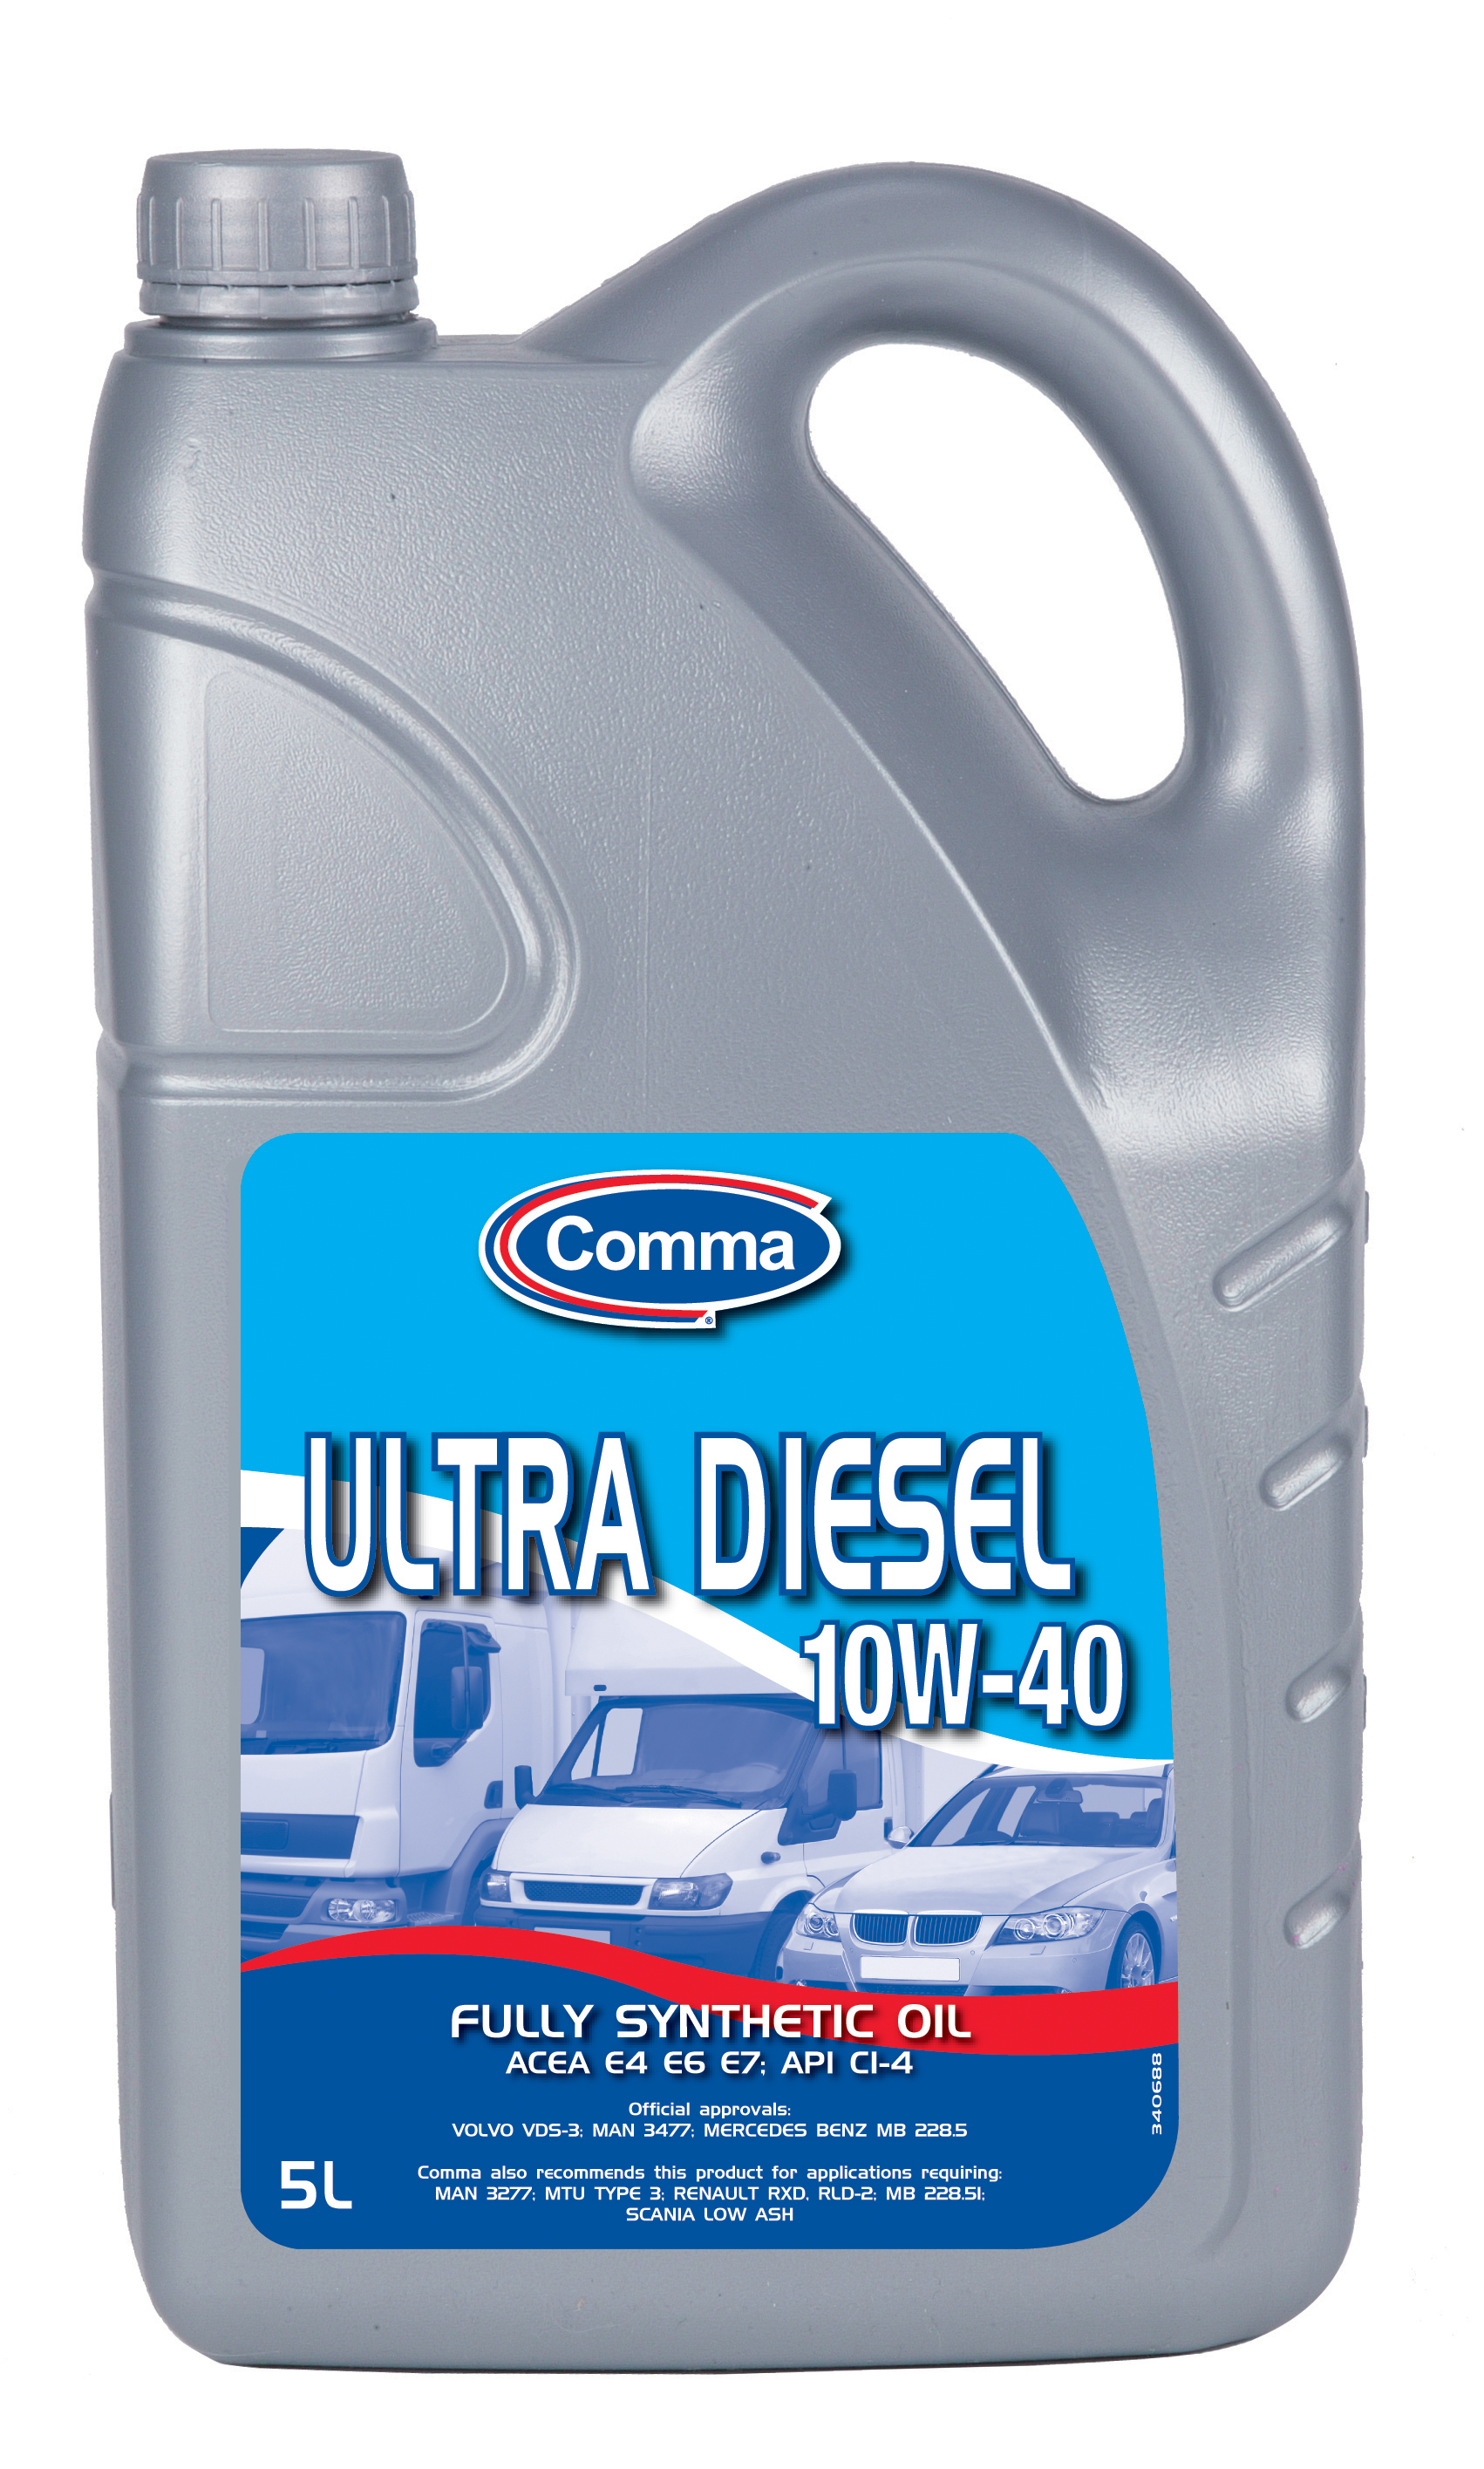 Comma Ultra Diesel 10w 40 Fully Synthetic Engine Motor Oil